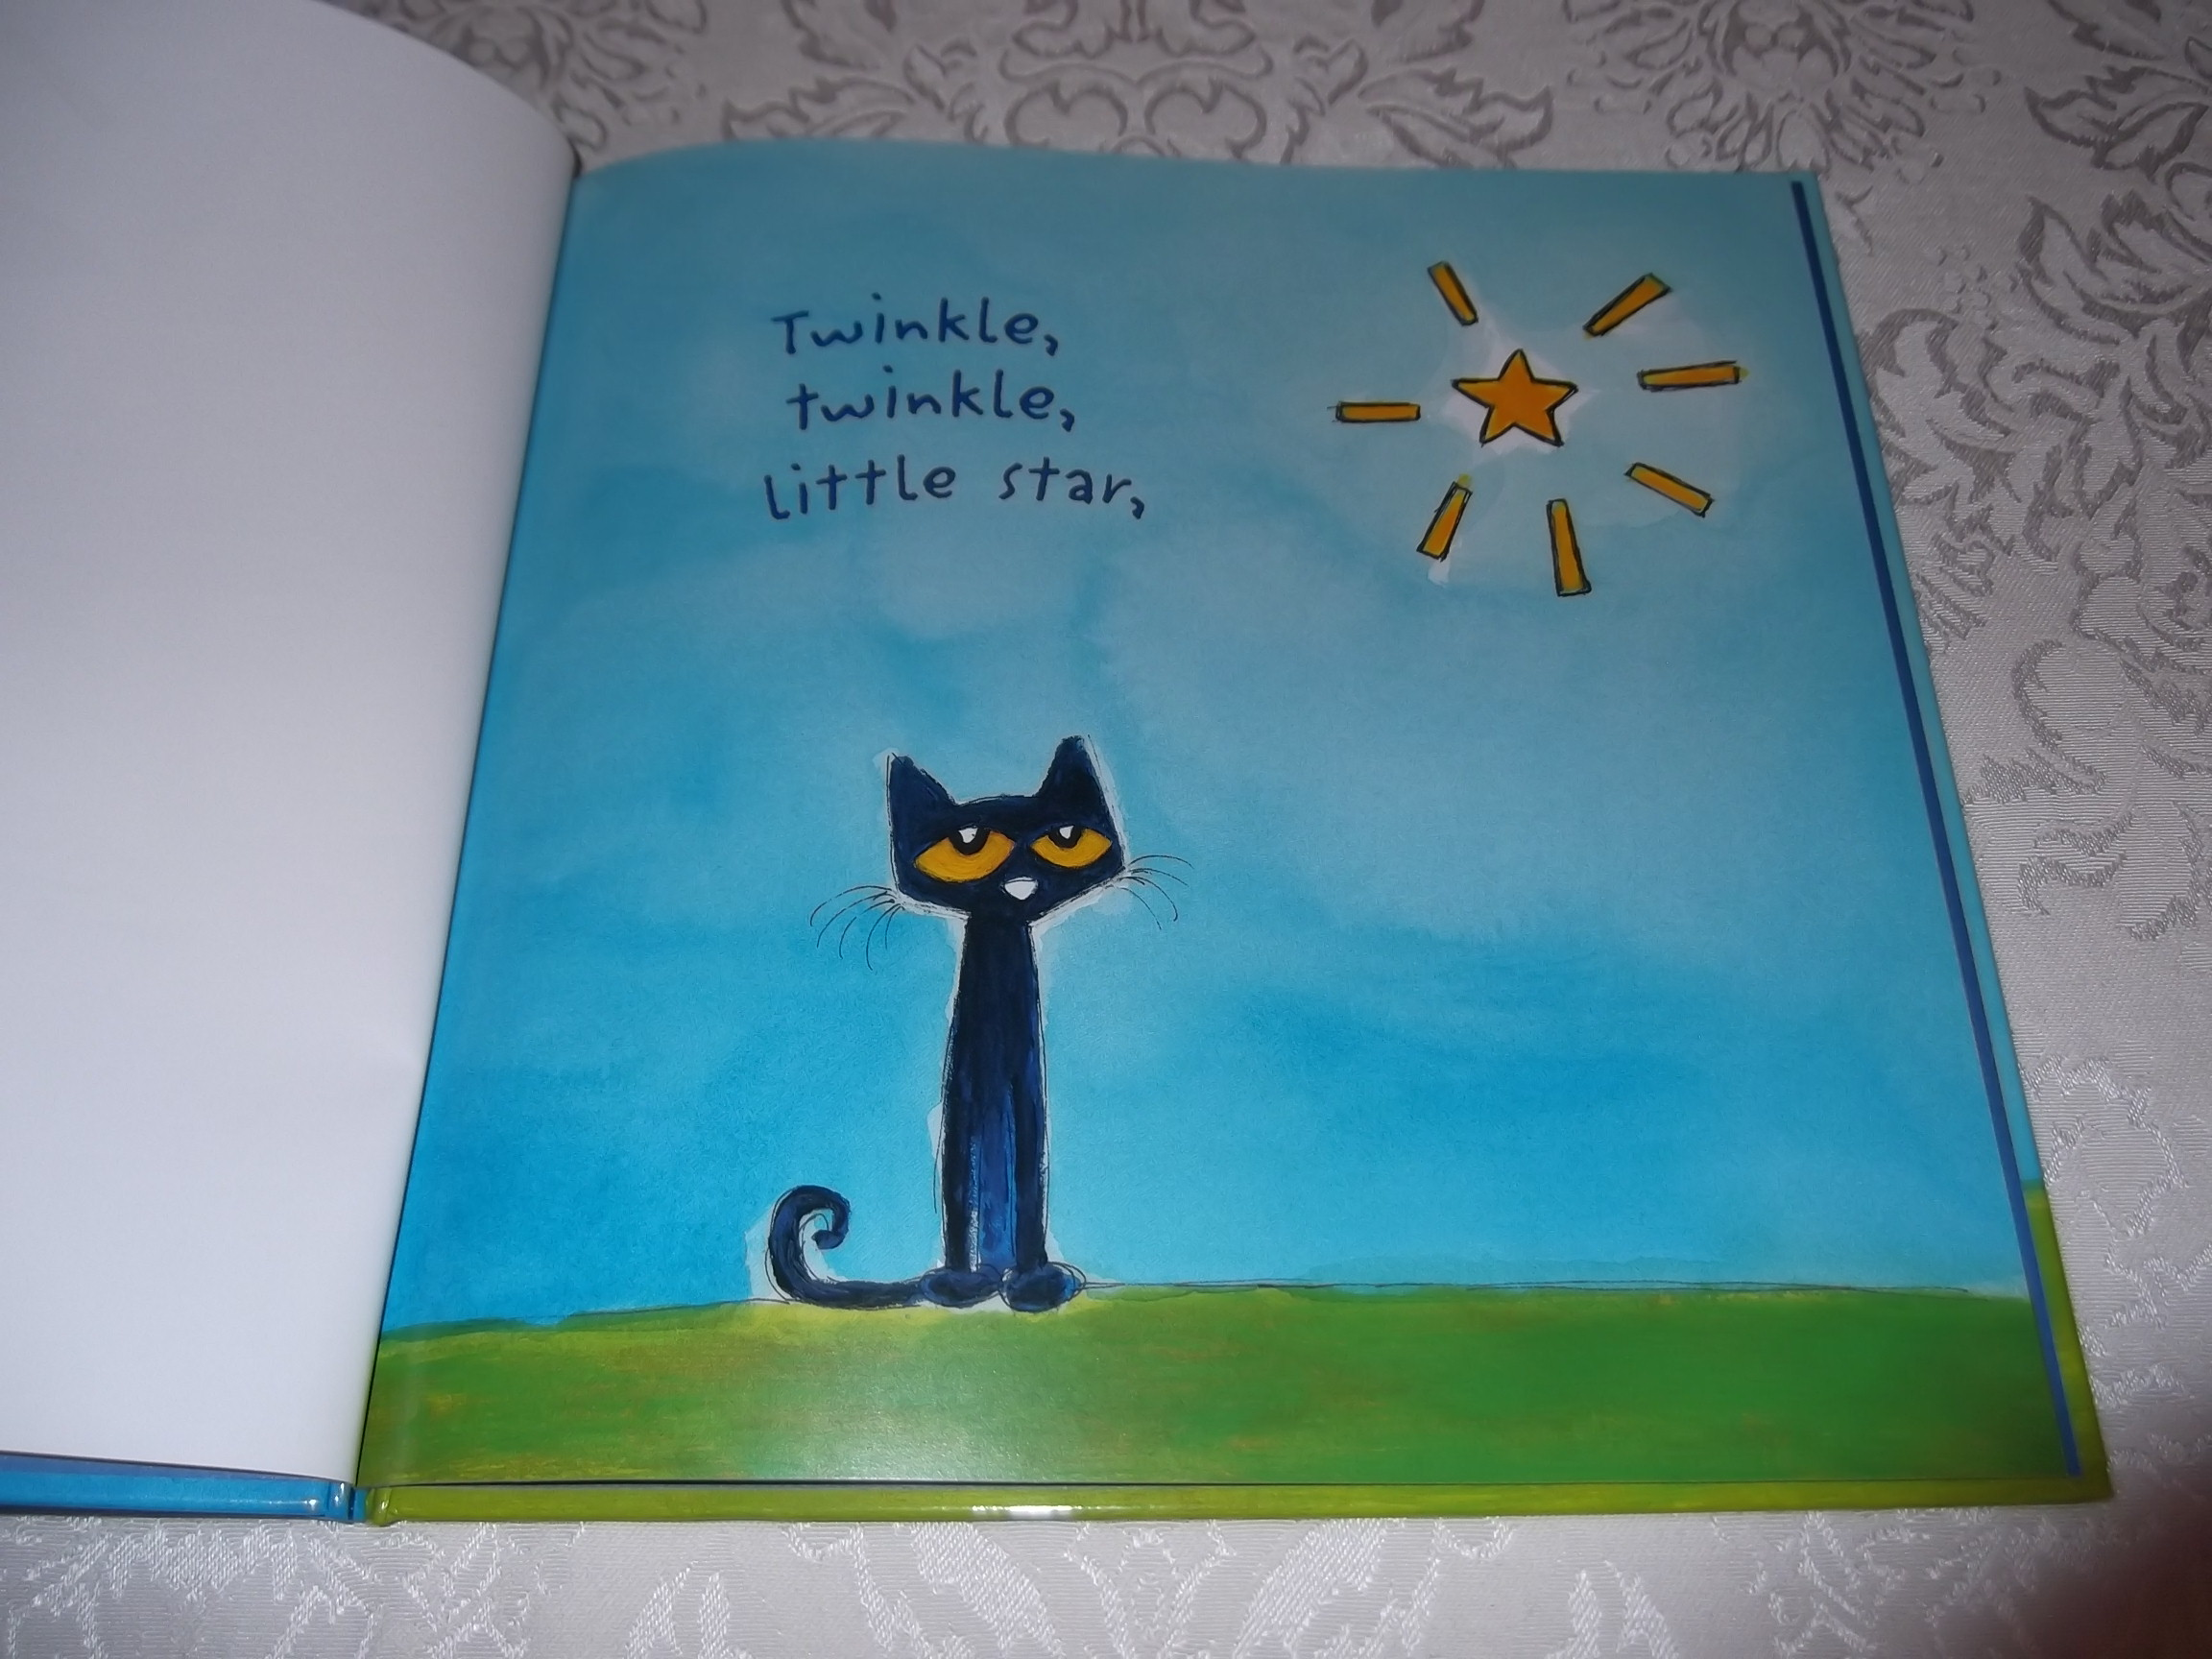 Image 14 of Pete the Cat Twinkle, Twinkle, Little Star James Dean Brand New HC